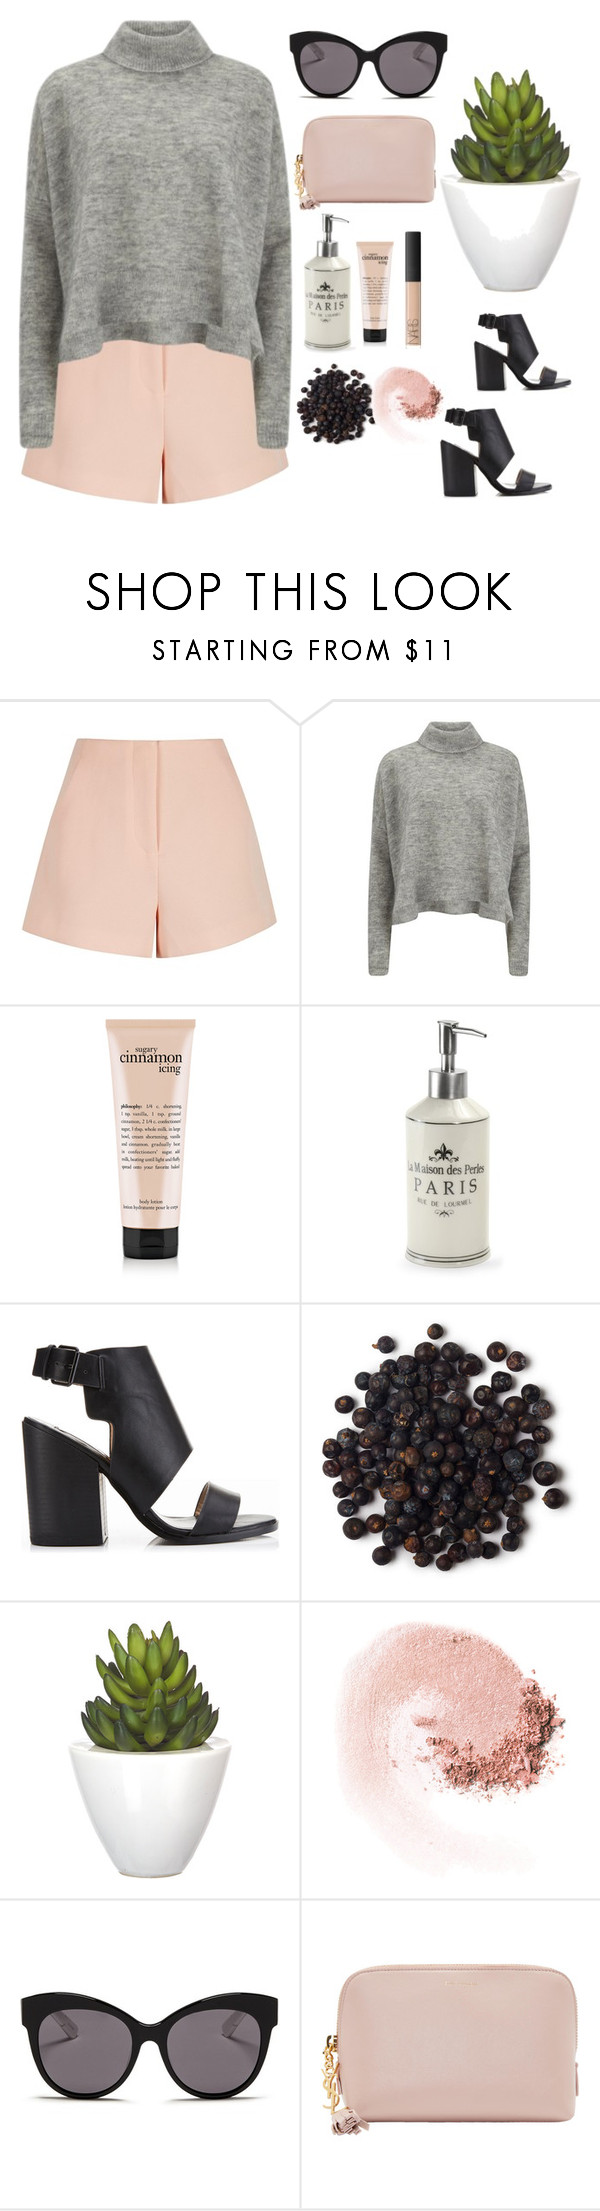 """""""Pinky pie"""" by maddiegbilly ❤ liked on Polyvore featuring Finders Keepers, Designers Remix, La Maison, Miss Selfridge, Pomax, NARS Cosmetics, Blanc & Eclare, Yves Saint Laurent, women's clothing and women's fashion"""